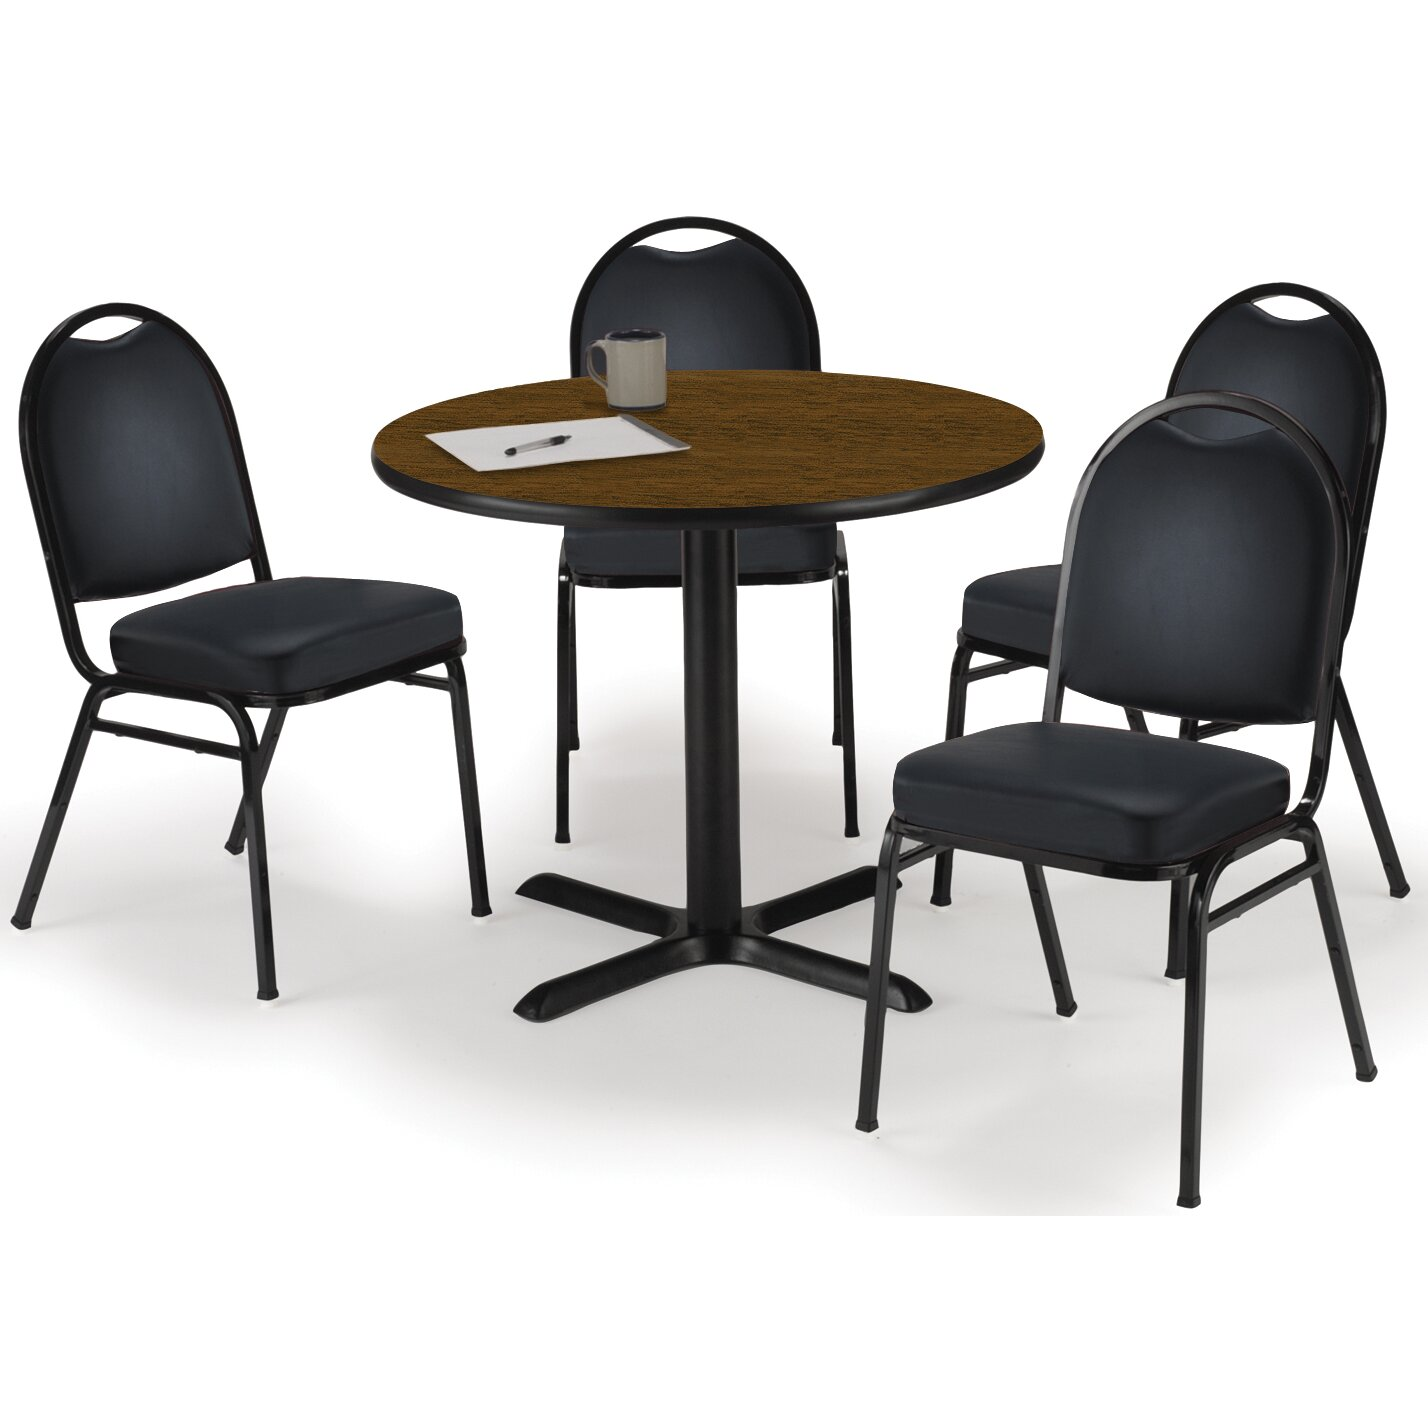 Folding Cafeteria Tables picture on Round Classroom Table KFI1201 with Folding Cafeteria Tables, Folding Table 03a8ffad8a7adbc4442666bb9f3a3b8f